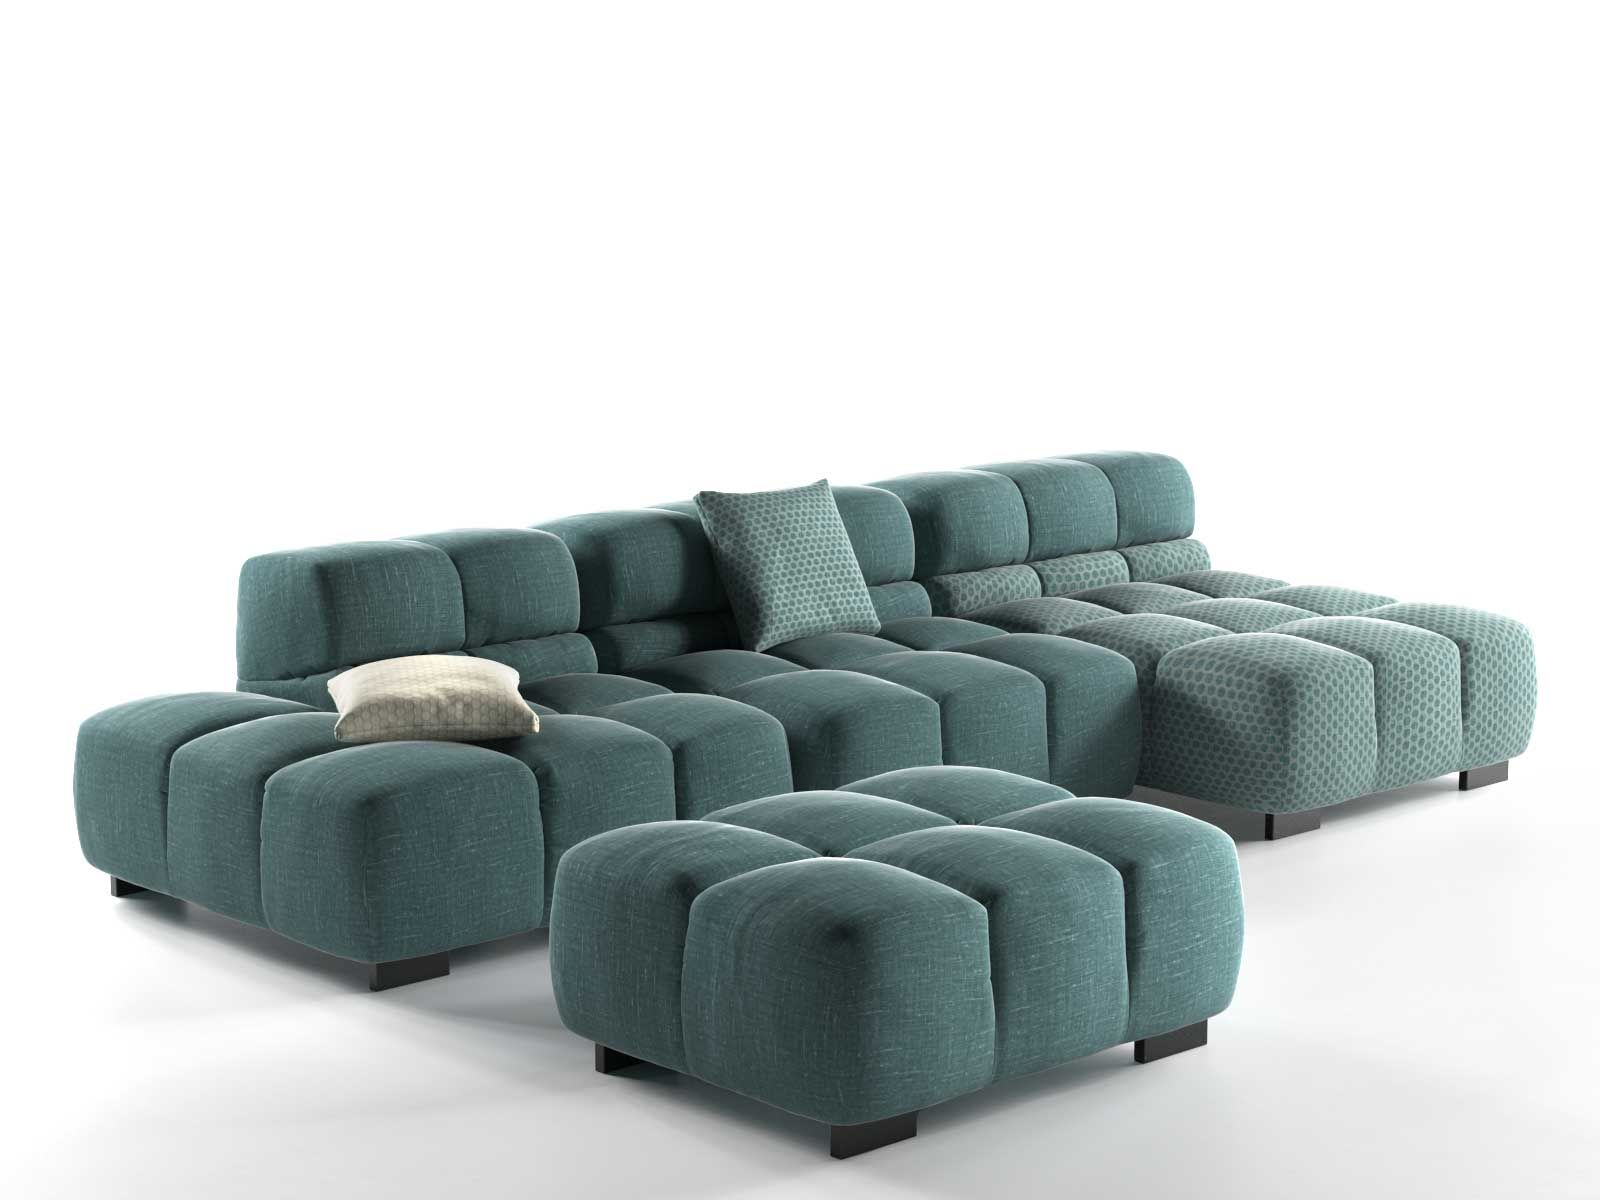 Nice Tufty Time Sofa Luxury Tufty Time Sofa 30 With Additional Sofas And Couches Set With Tufty Time Sofa Http So Fabric Sofa Design Sofa Design Sofa Set